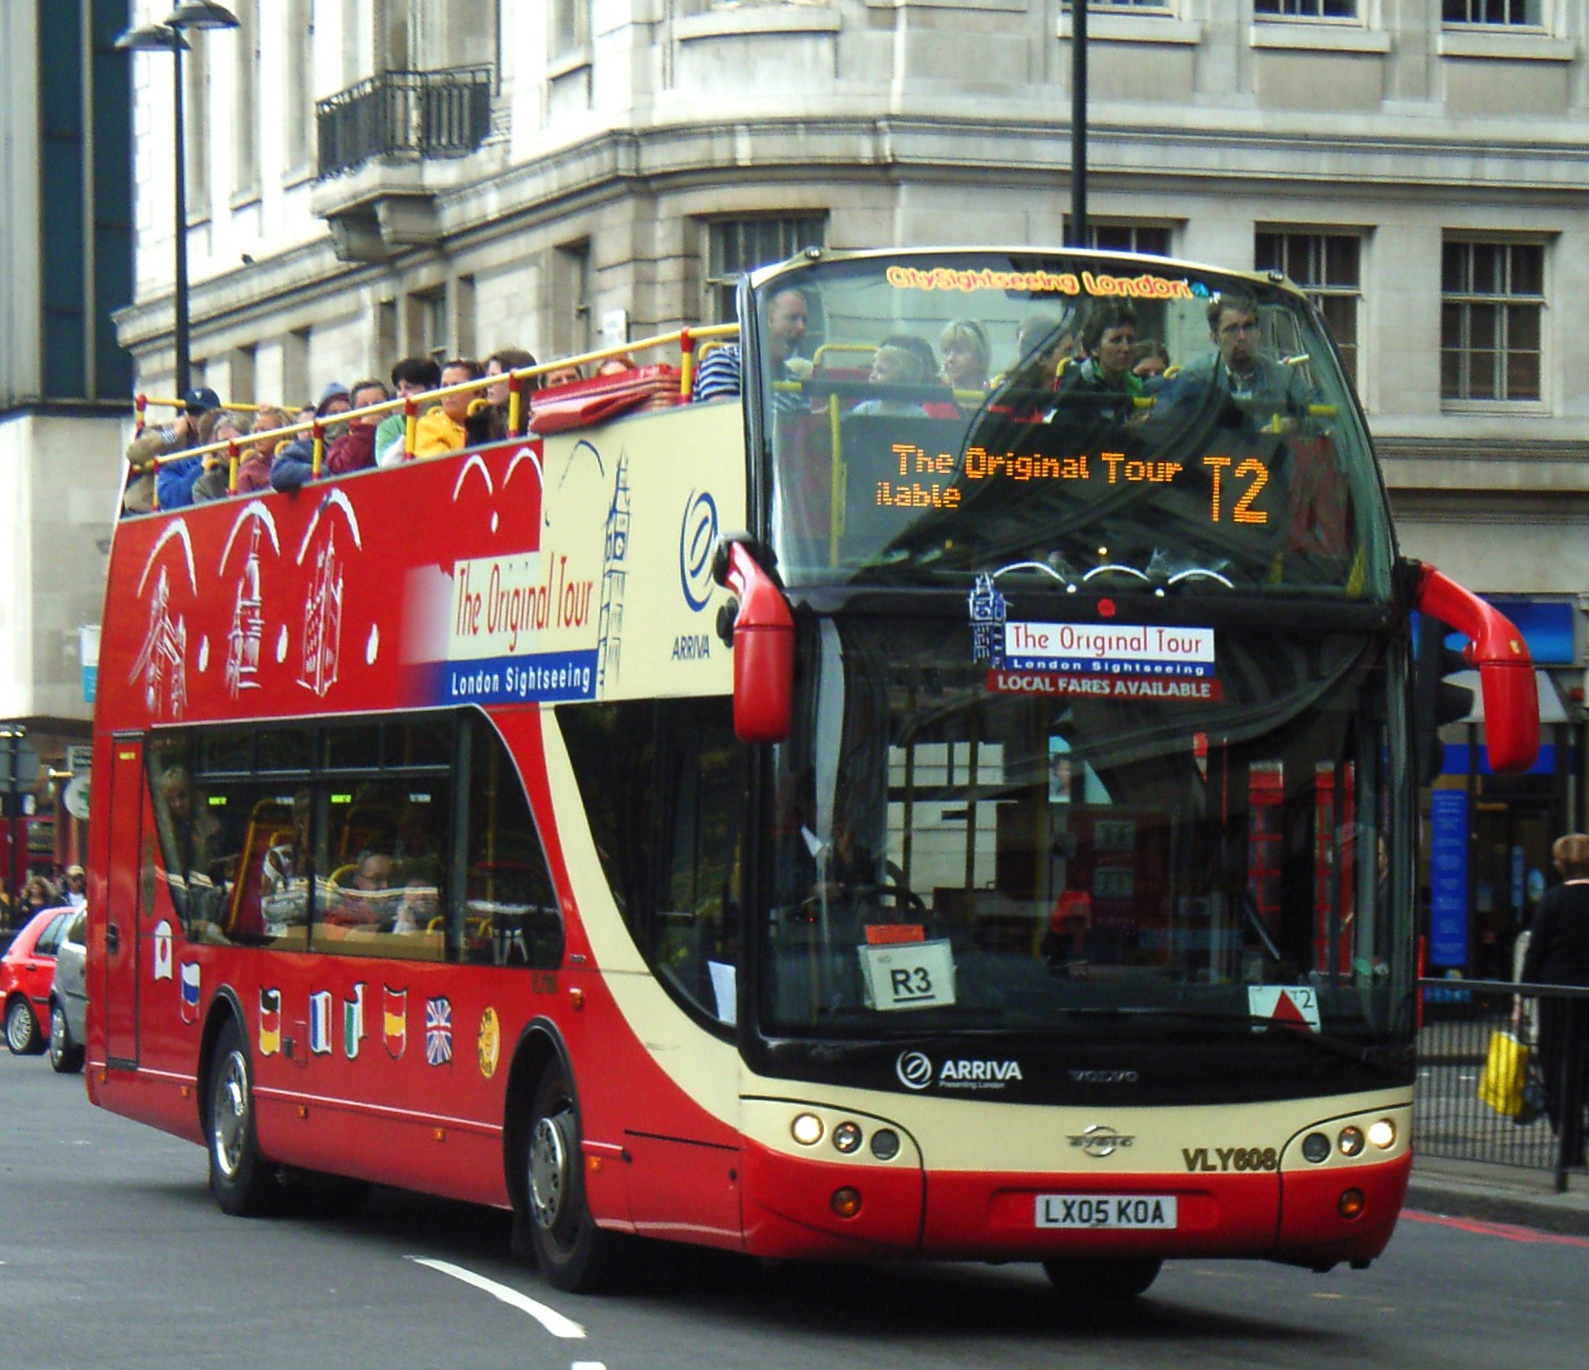 Do as the tourists do: ride the sightseeing bus!